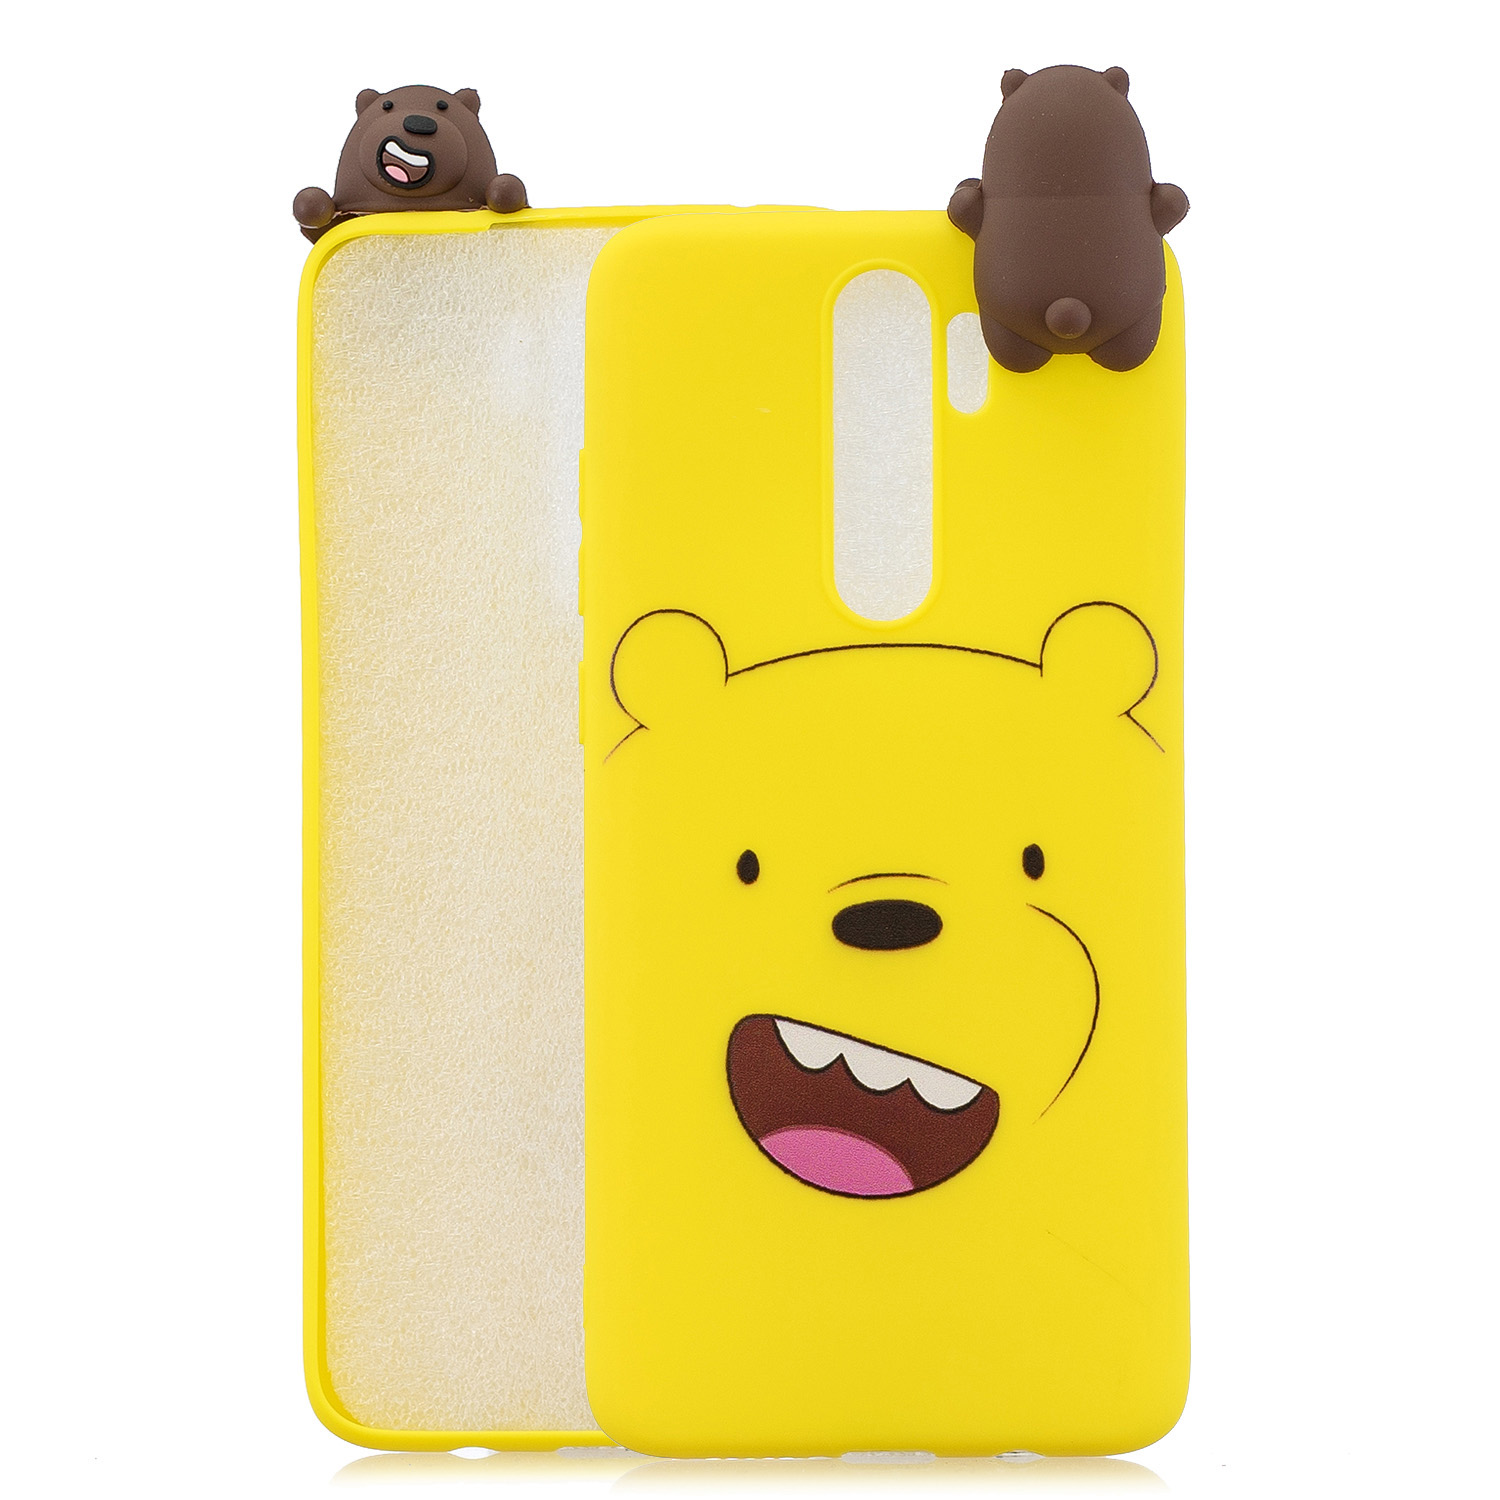 For Redmi NOTE 8 NOTE 8 pro 3D Color Painting Pattern Drop Protection Soft TPU Back Cover Mobile Phone Case yellow